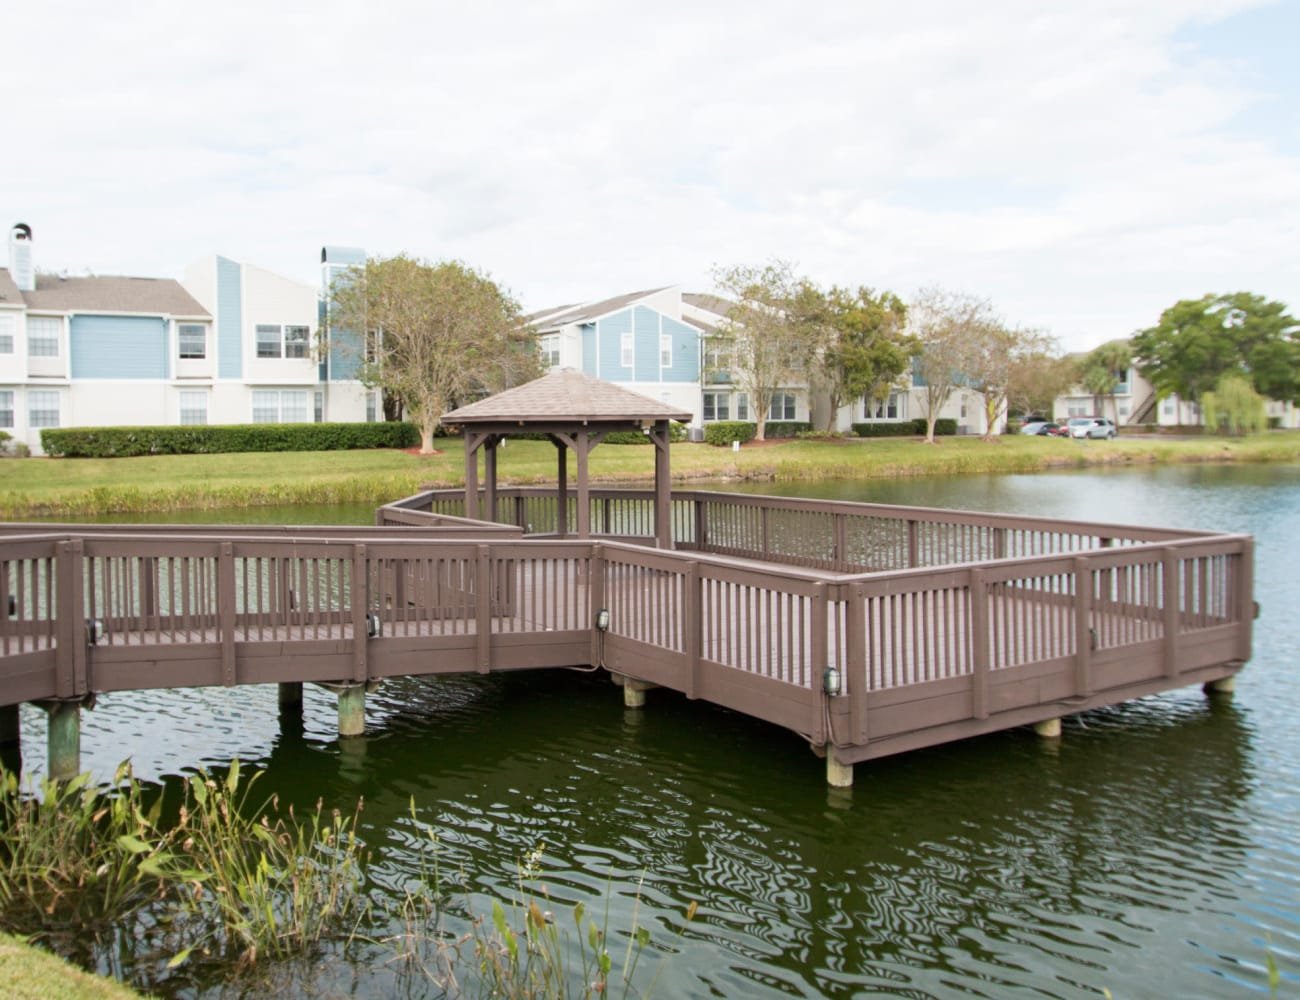 Picnic tables on the dock at Fairways at Feather Sound in Clearwater, Florida